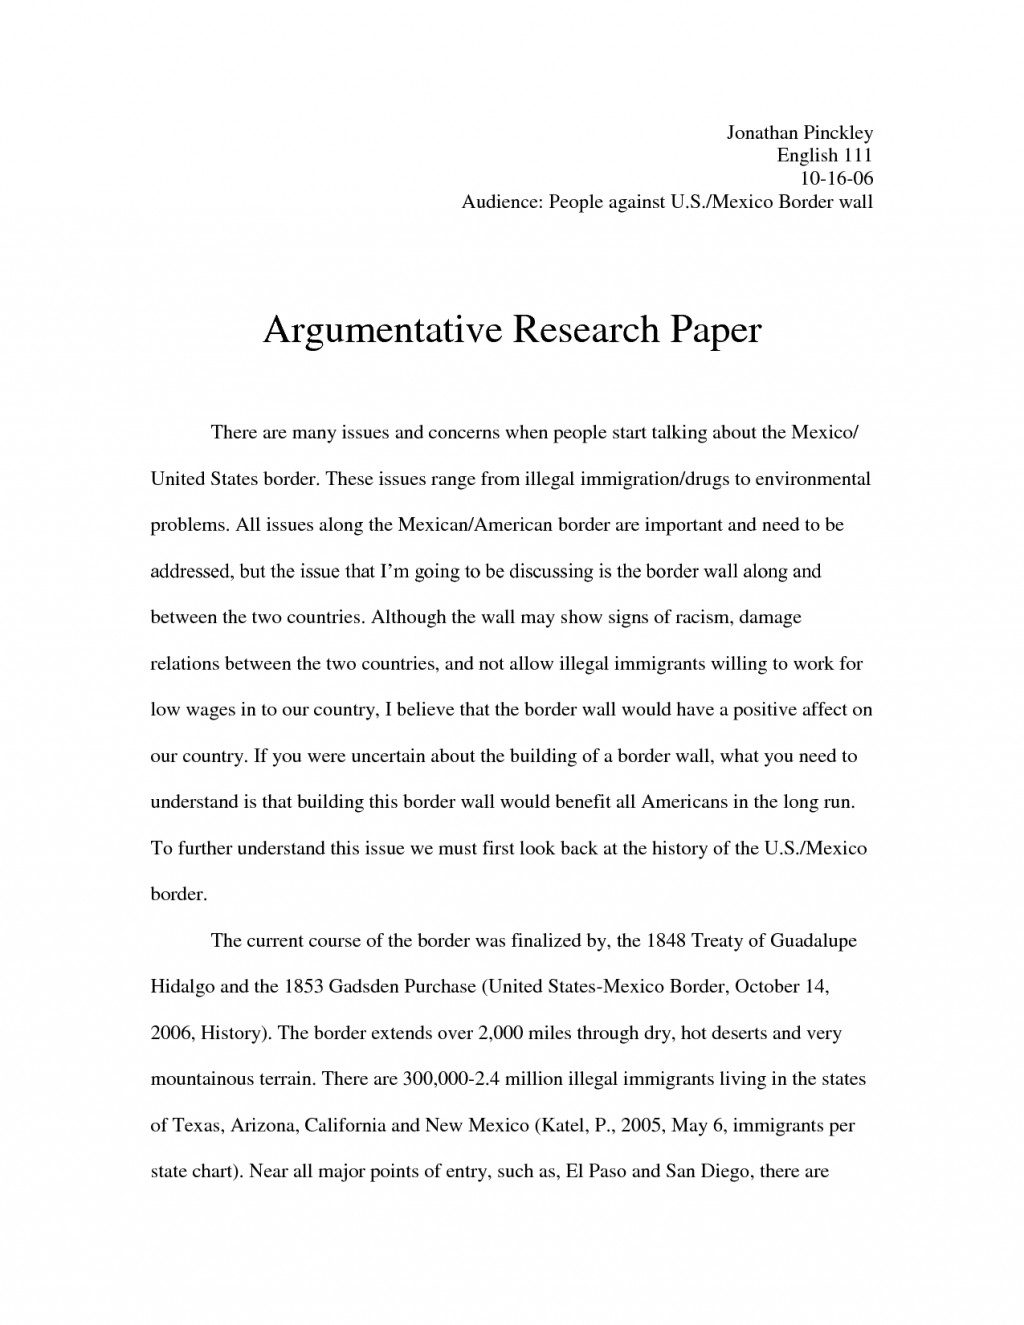 014 Topics For Argumentative Research Paper Uncategorized Debate20y Thesis High School Sentence Starters Outline Worksheet Wonderful Medical Papers Large